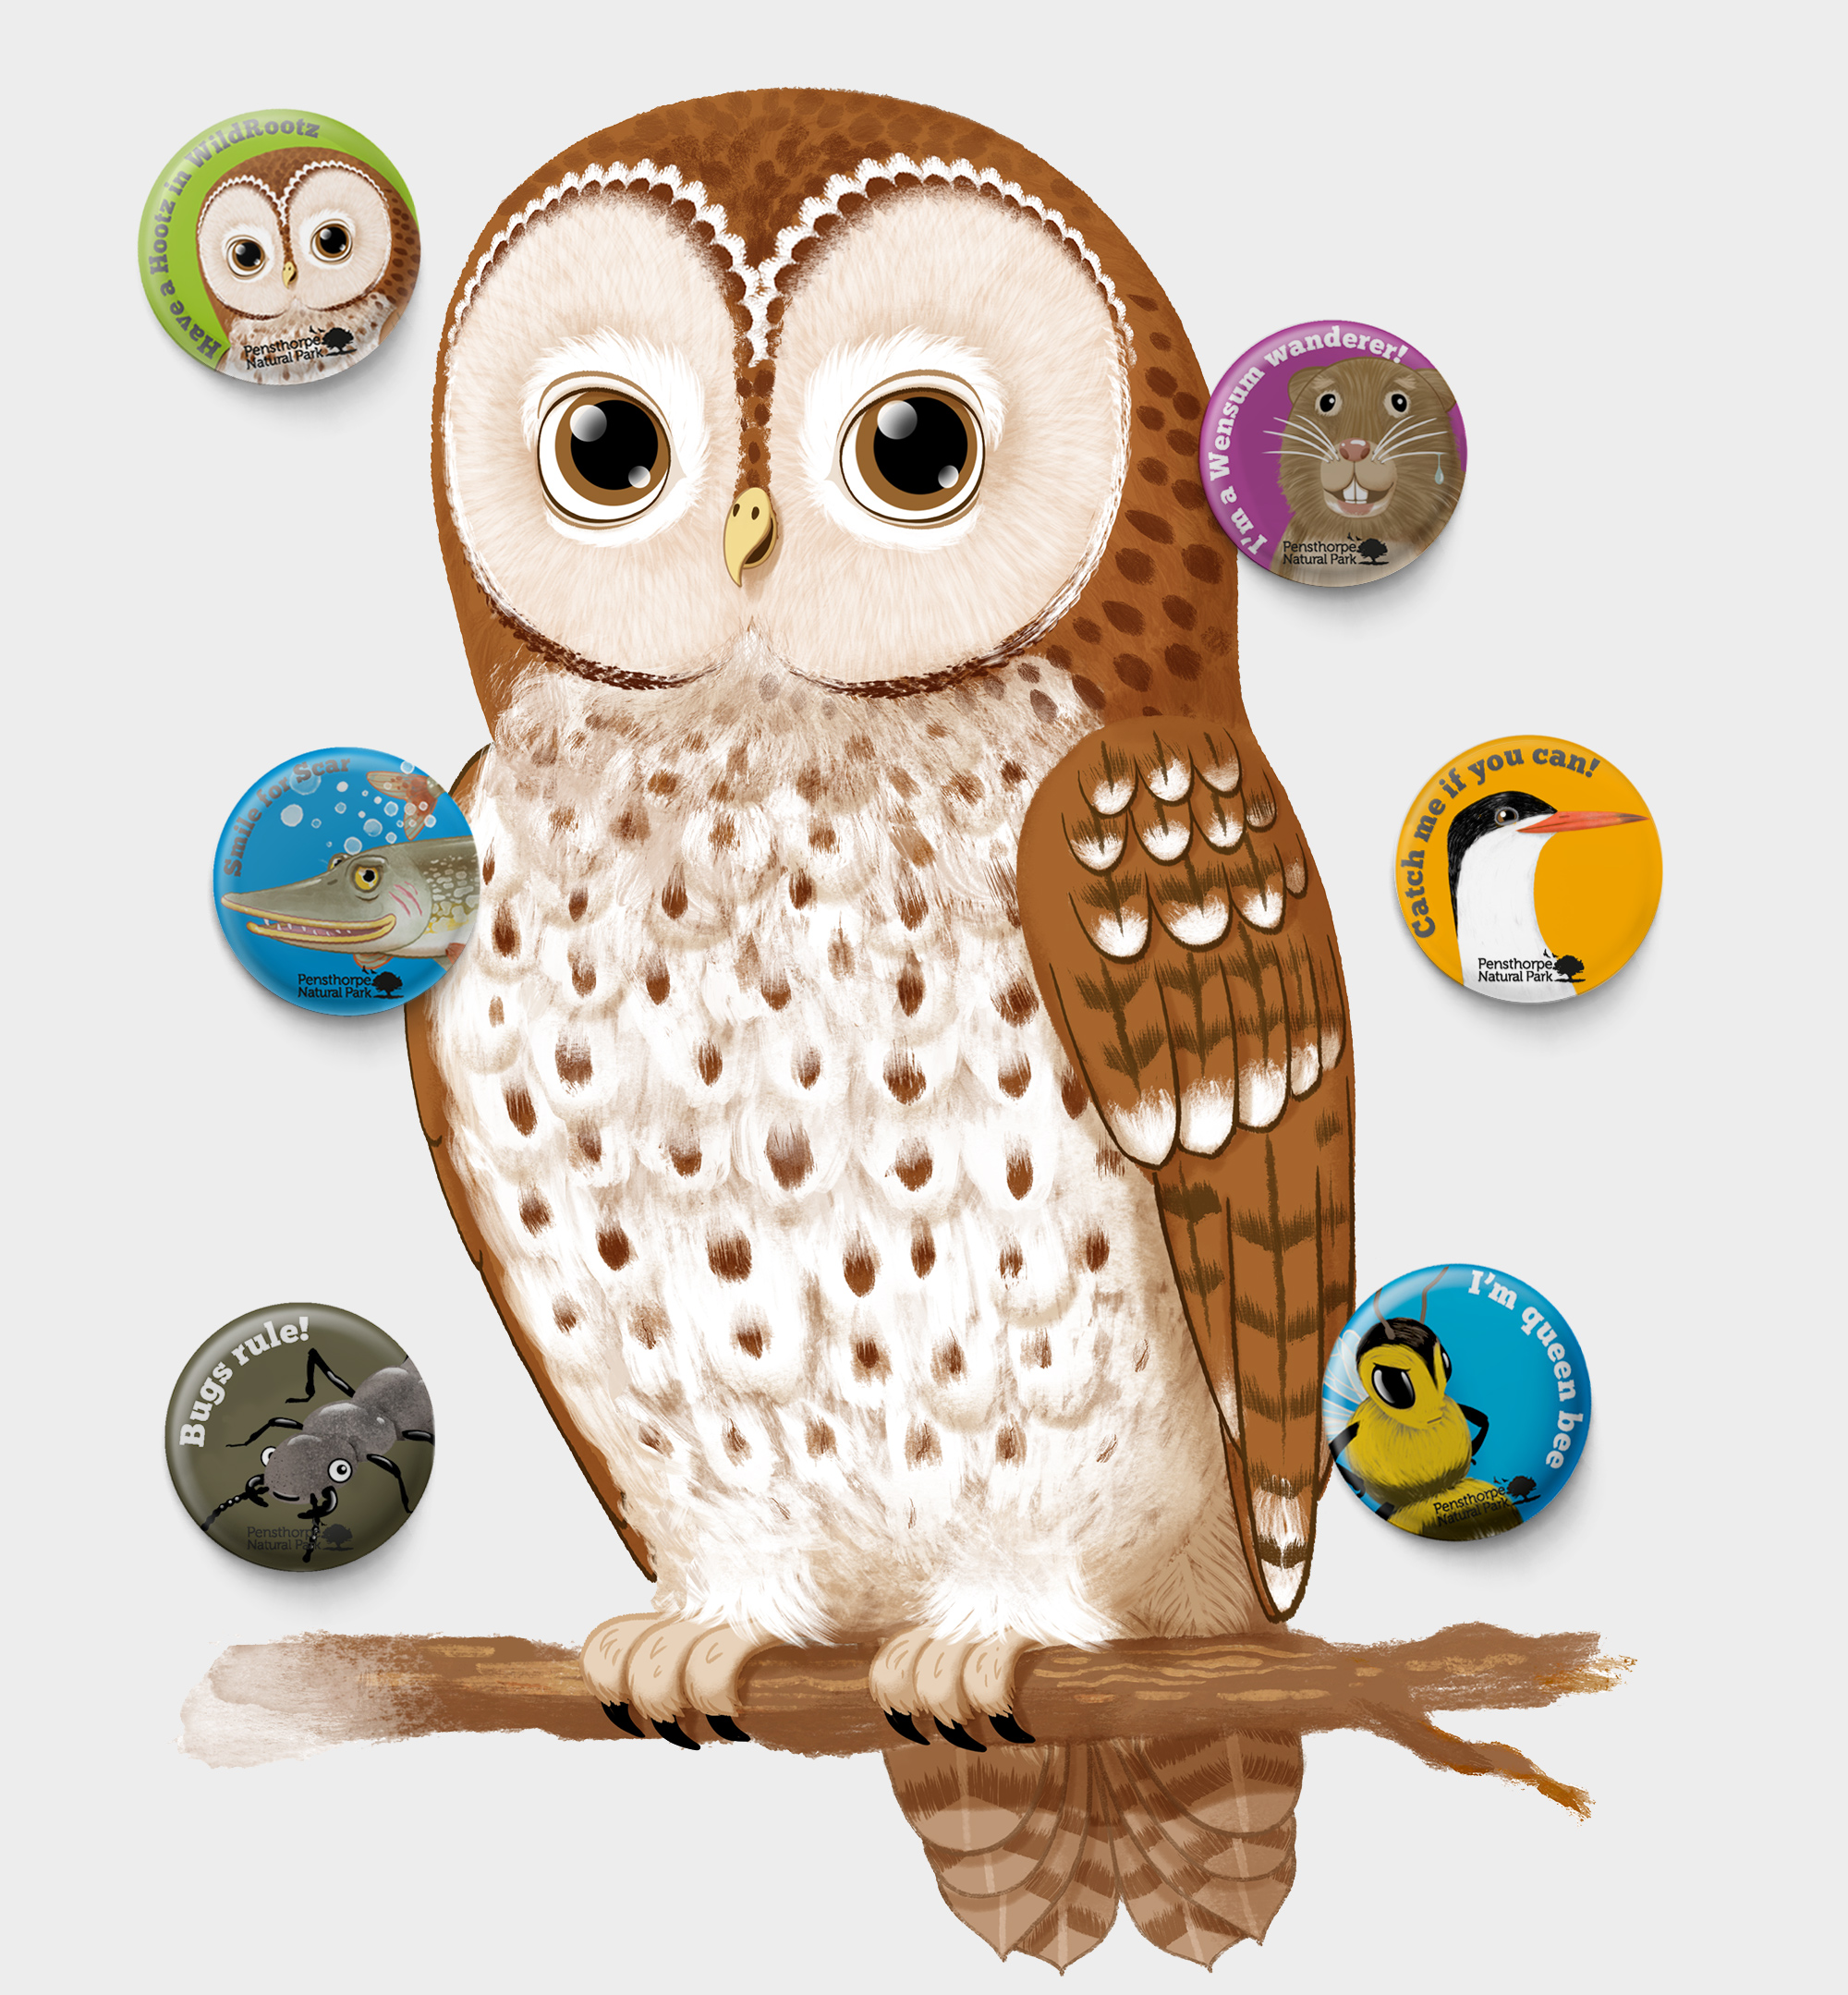 - I was asked by Pensthorpe Natural Park to design 12 characters that represented a selection of the British wildlife found at the park. The park mascot Hootz the Tawny Owl is the feature character, other characters represent the park's conservation projects, migrating, nesting and resident species.